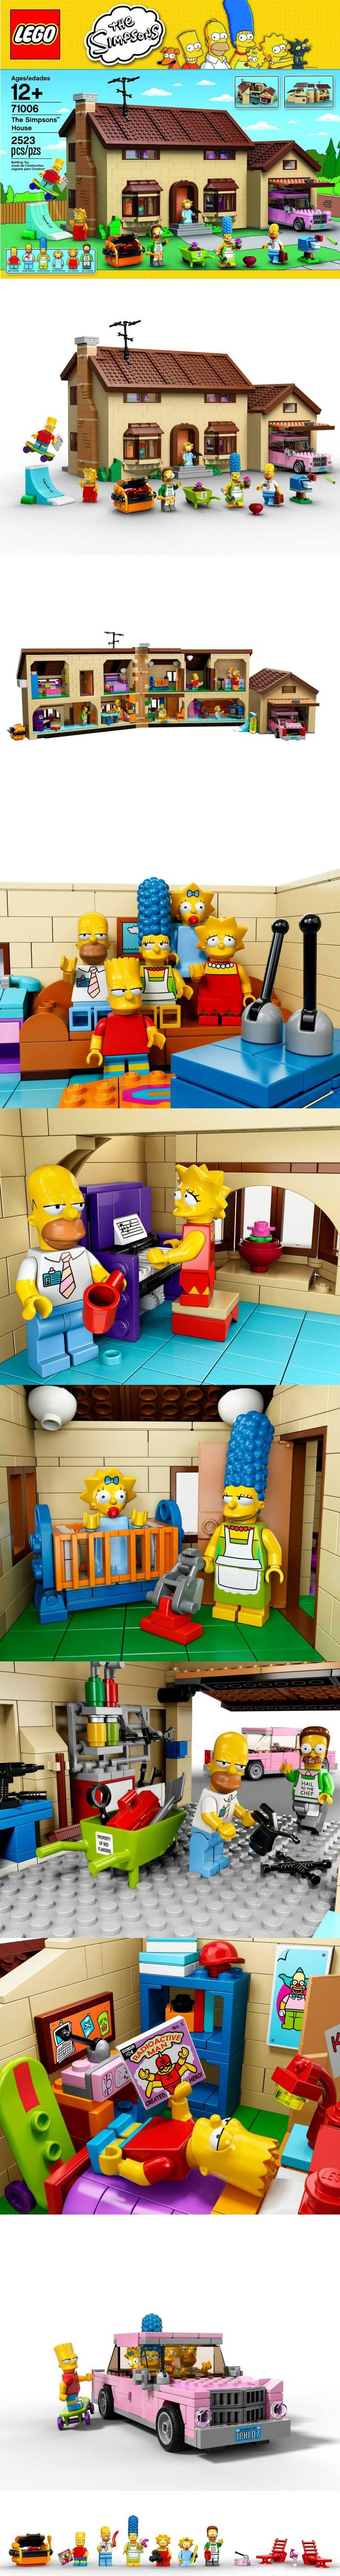 LEGO 71006 - The Simpsons House - official images #PinYourResolution